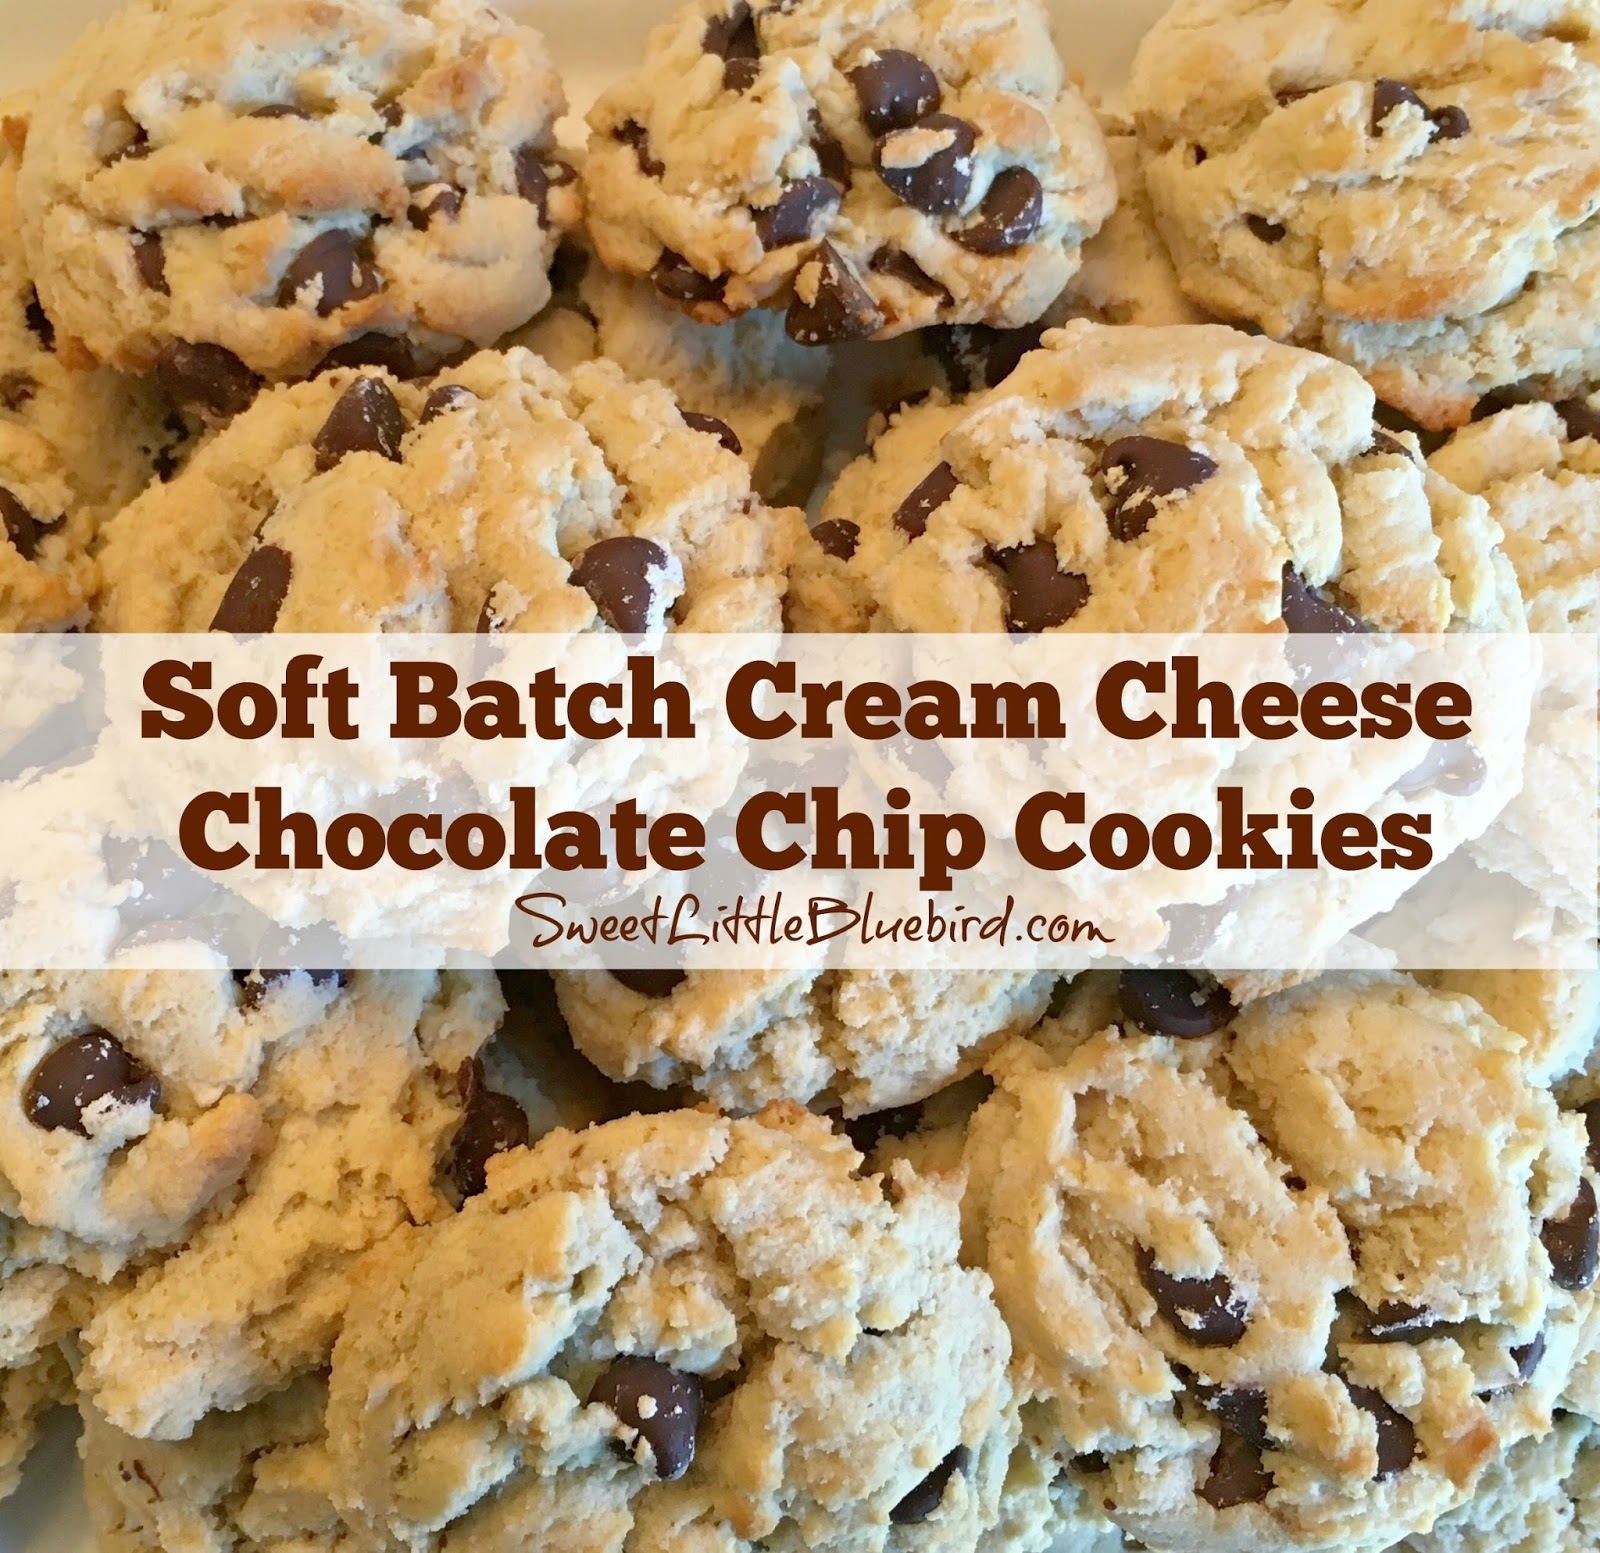 Sweet Little Bluebird: Soft Batch Cream Cheese Chocolate Chip Cookies